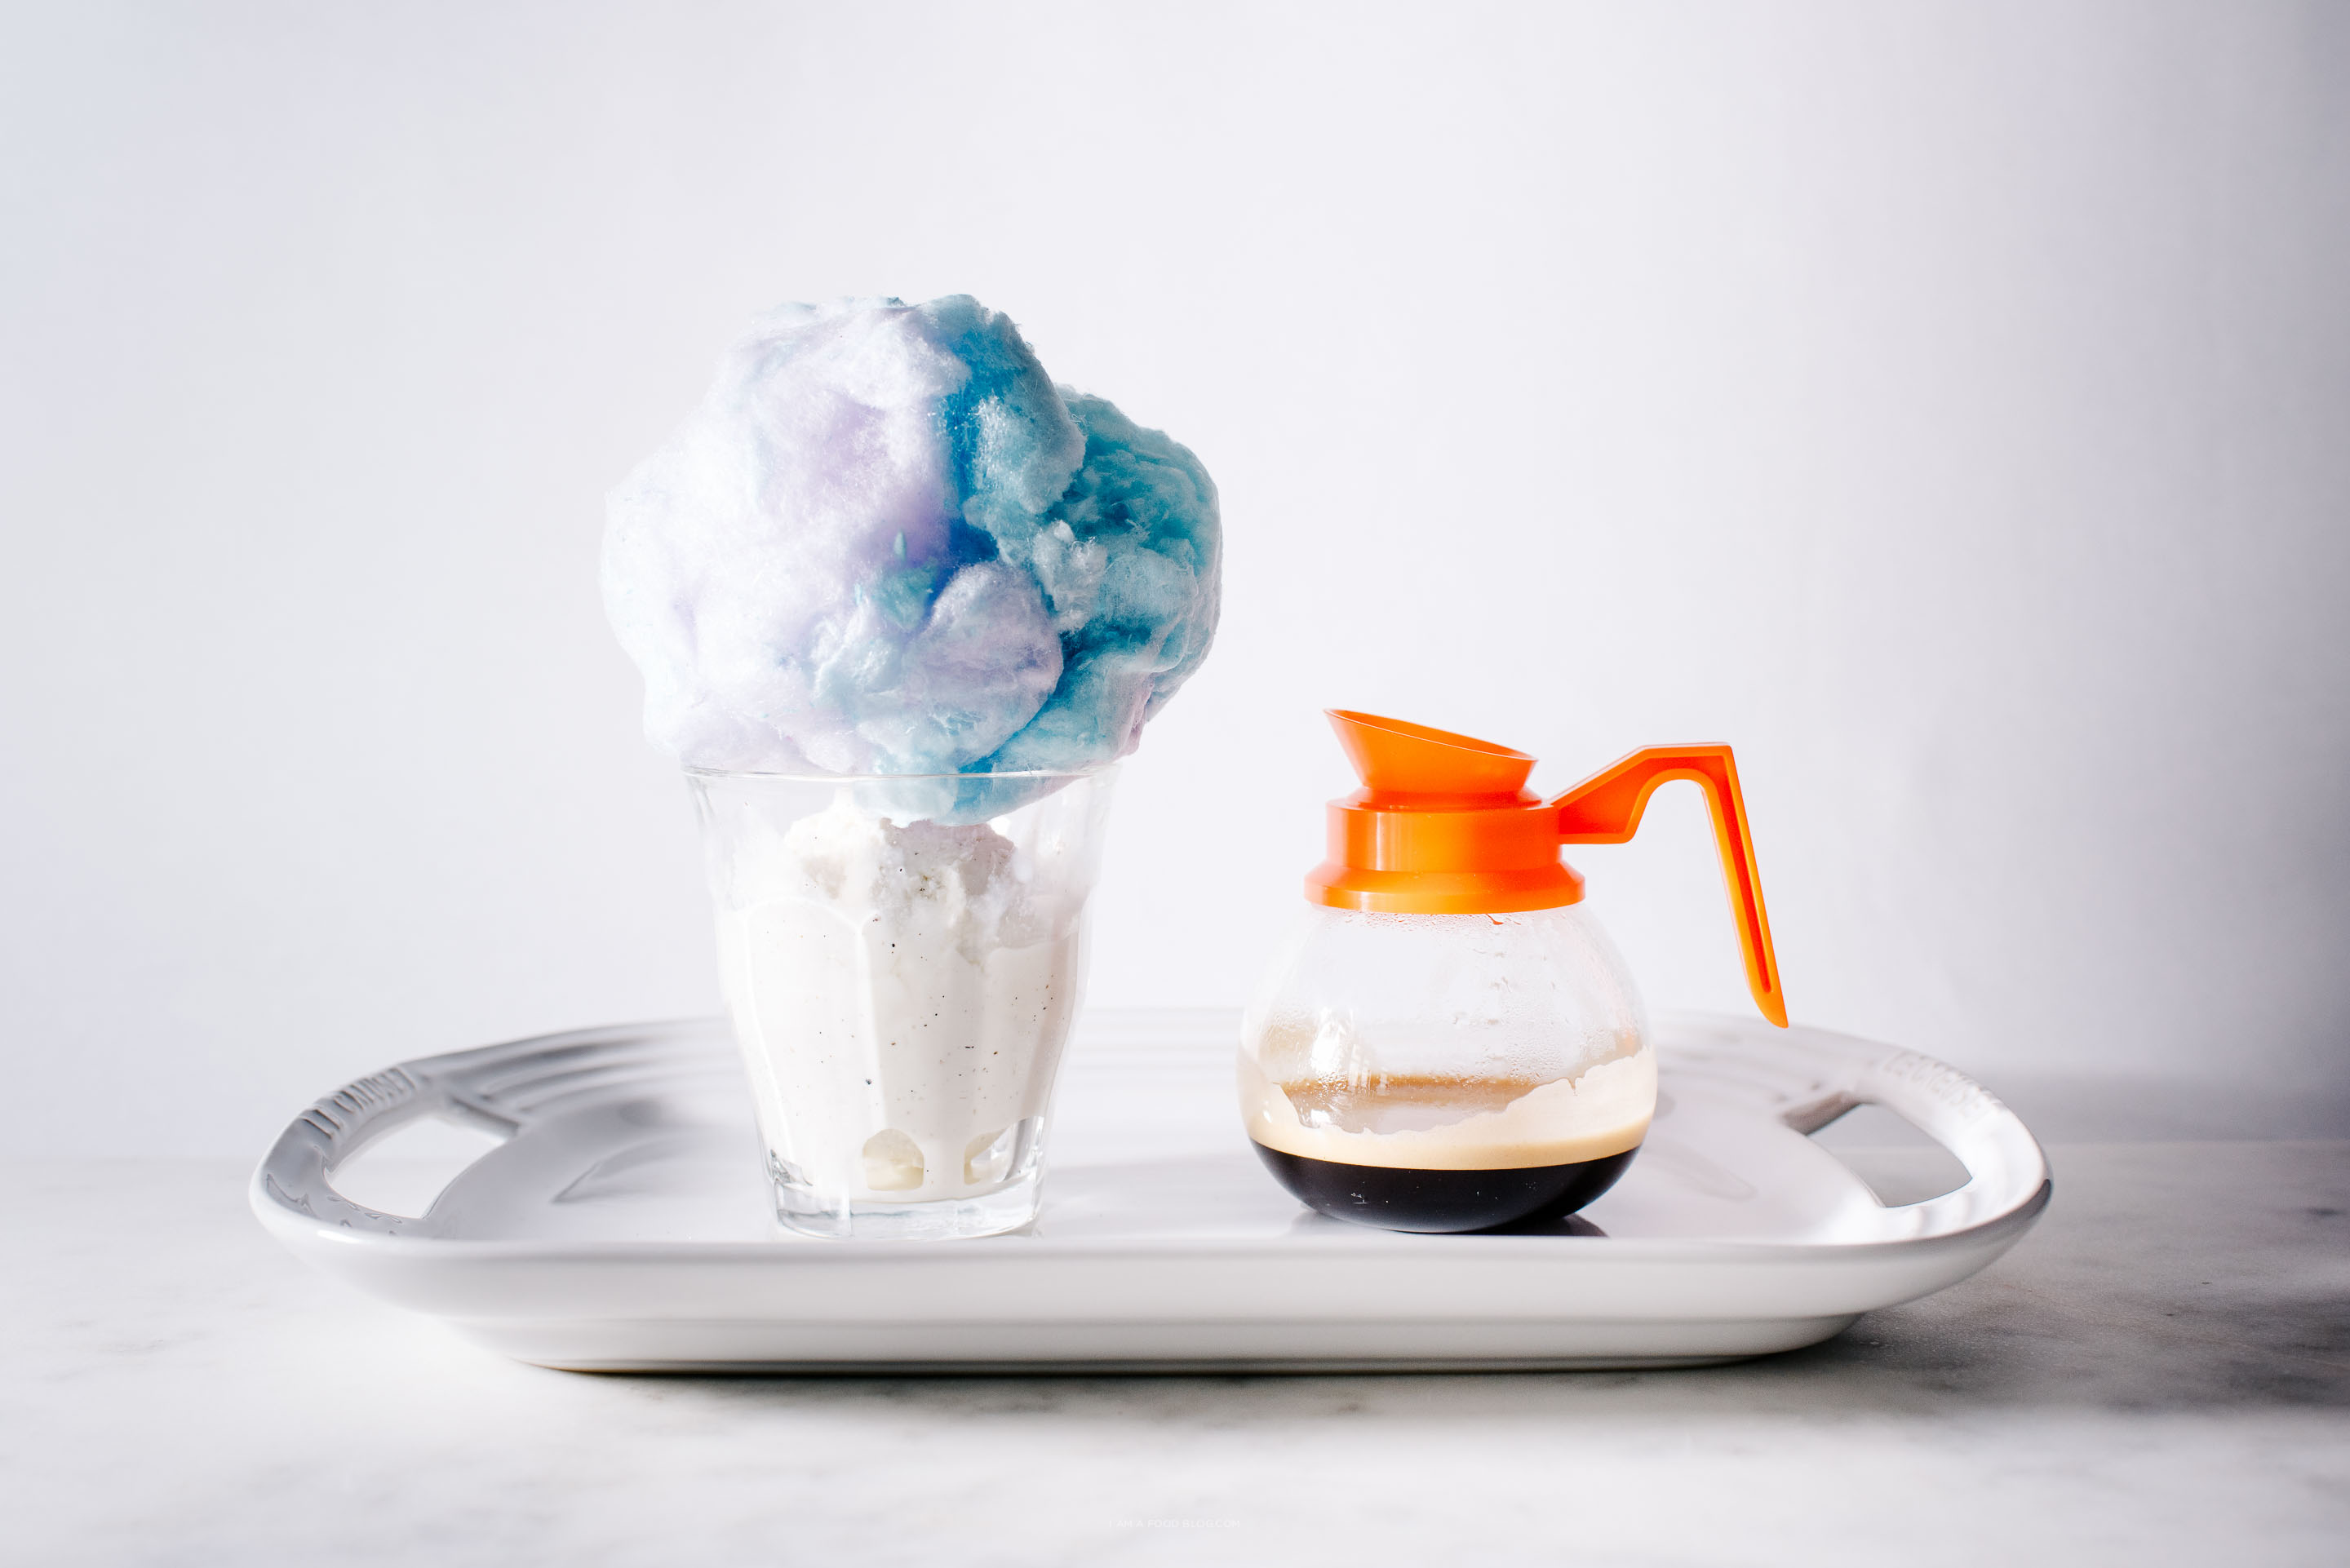 cotton candy affogato recipe - www.iamafoodblog.com